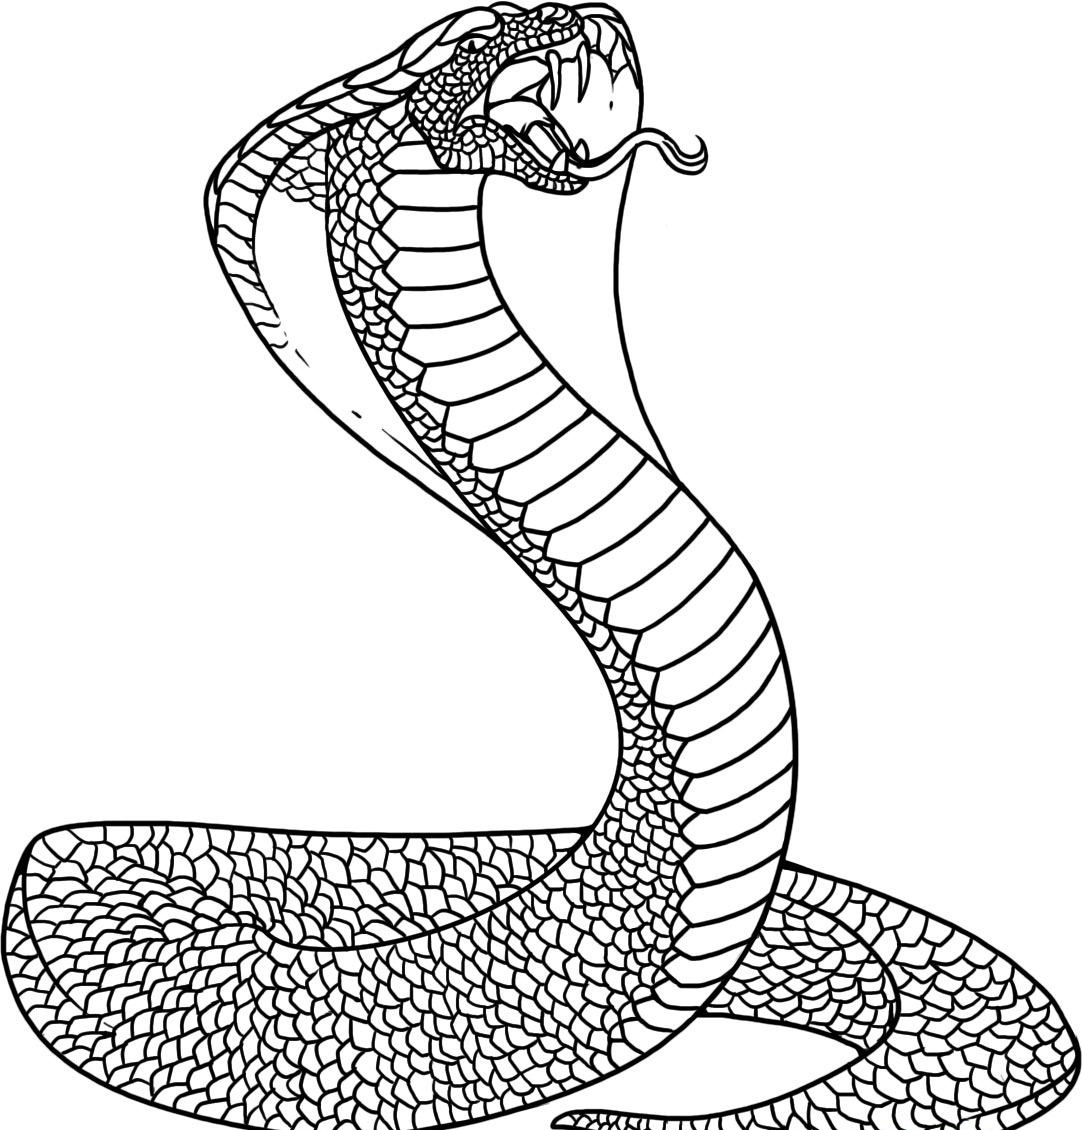 Free Printable Snake Coloring Pages